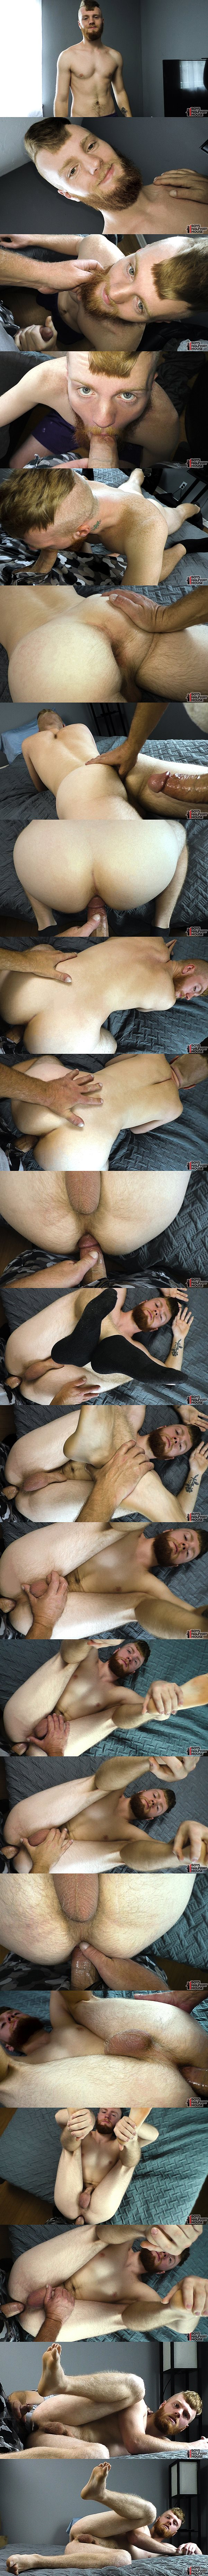 Boyshalfwayhouse - The house manager barebacks straight newcomer Ryder's tight virgin ass before he seeds Ryder's worked hole in Accepting His Fate 02